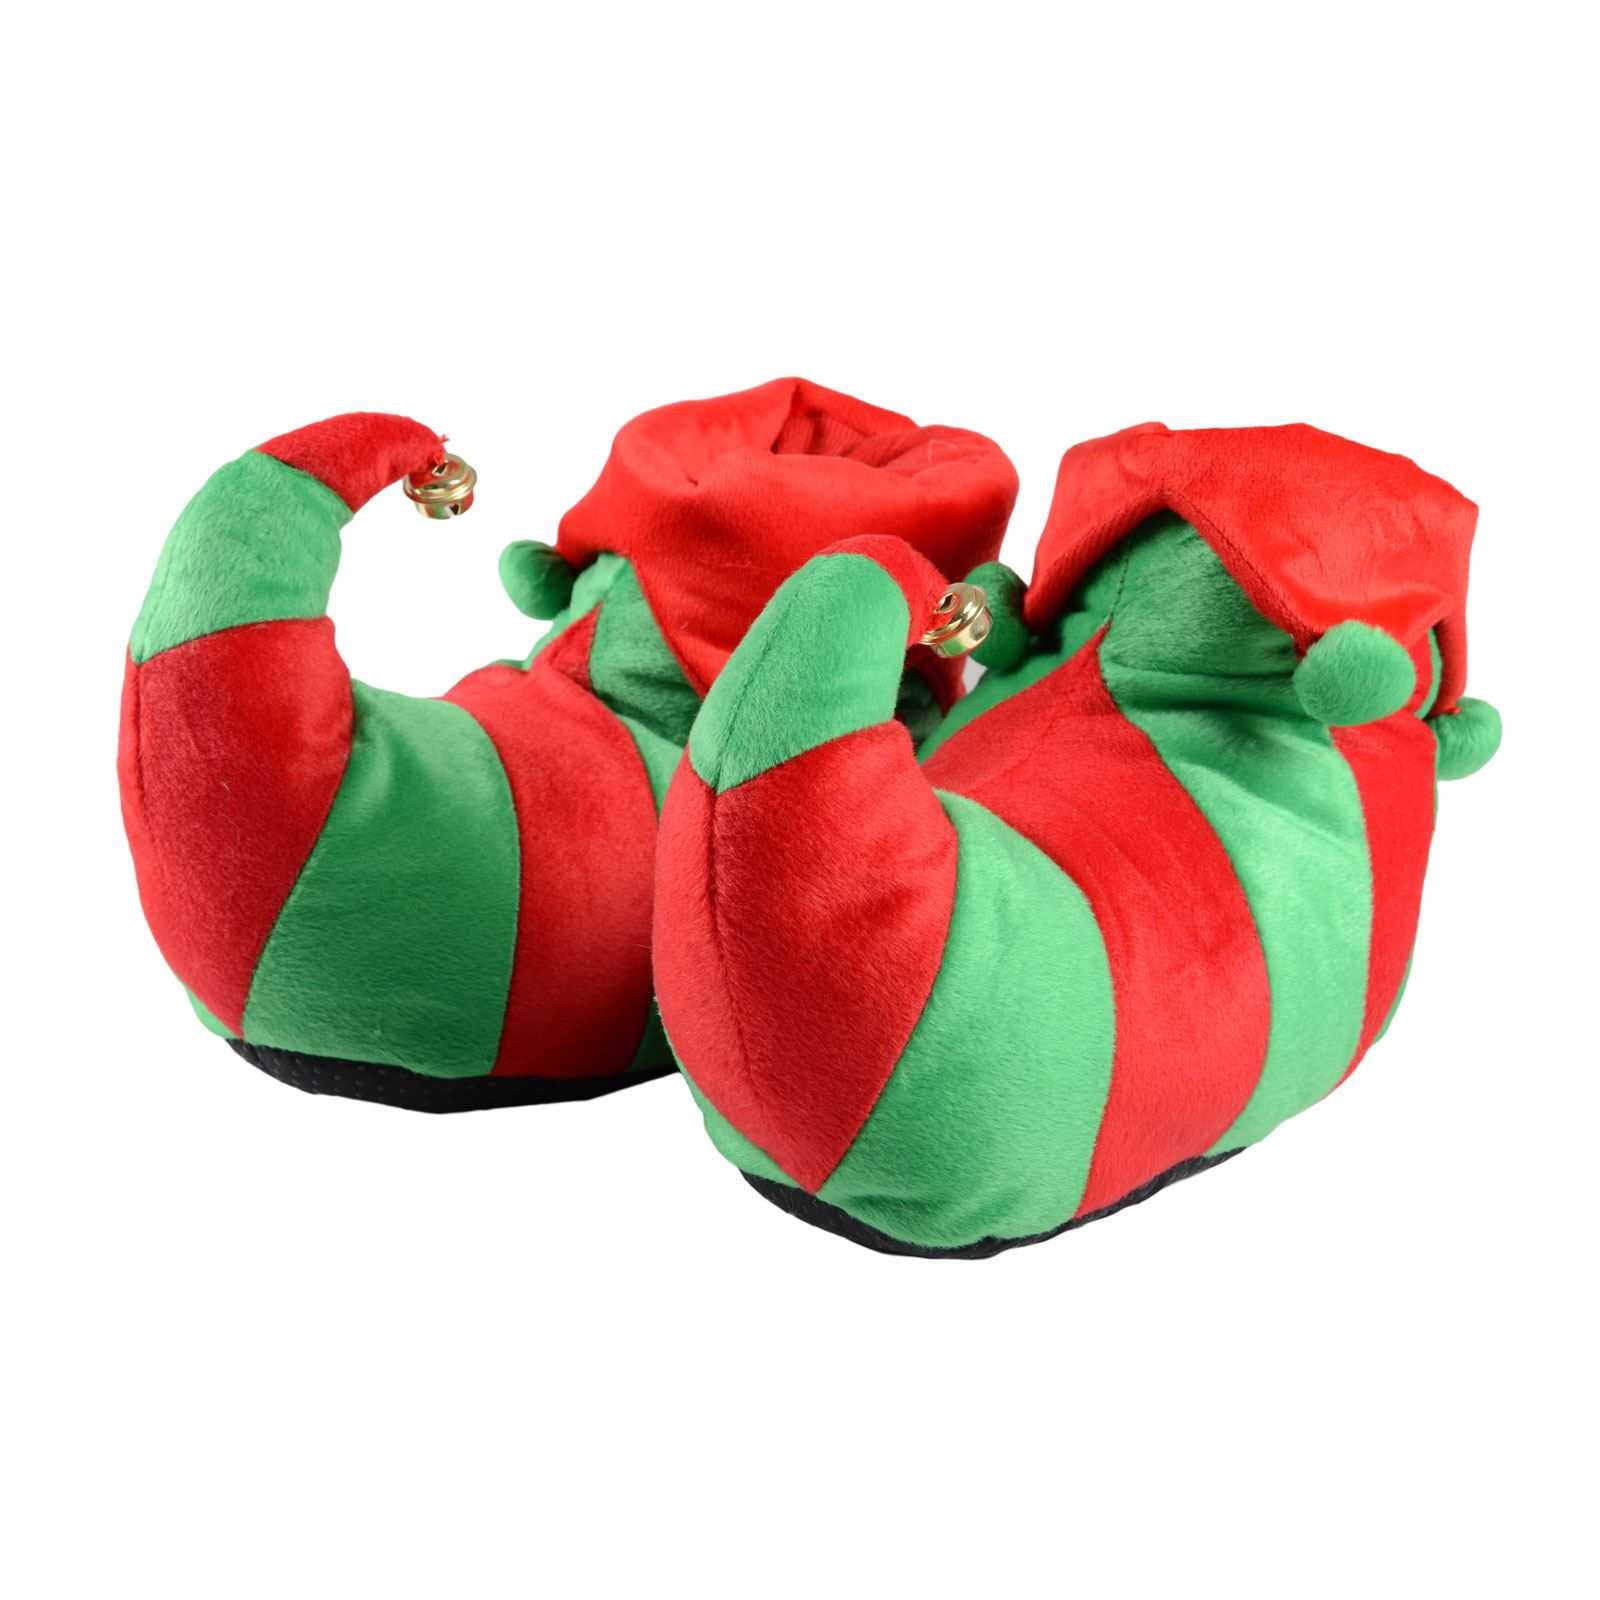 bad0f8b15e25 Details about Womens   Mens Adult Elf Shoes Red   Green Christmas Slippers    Non Slip Soles